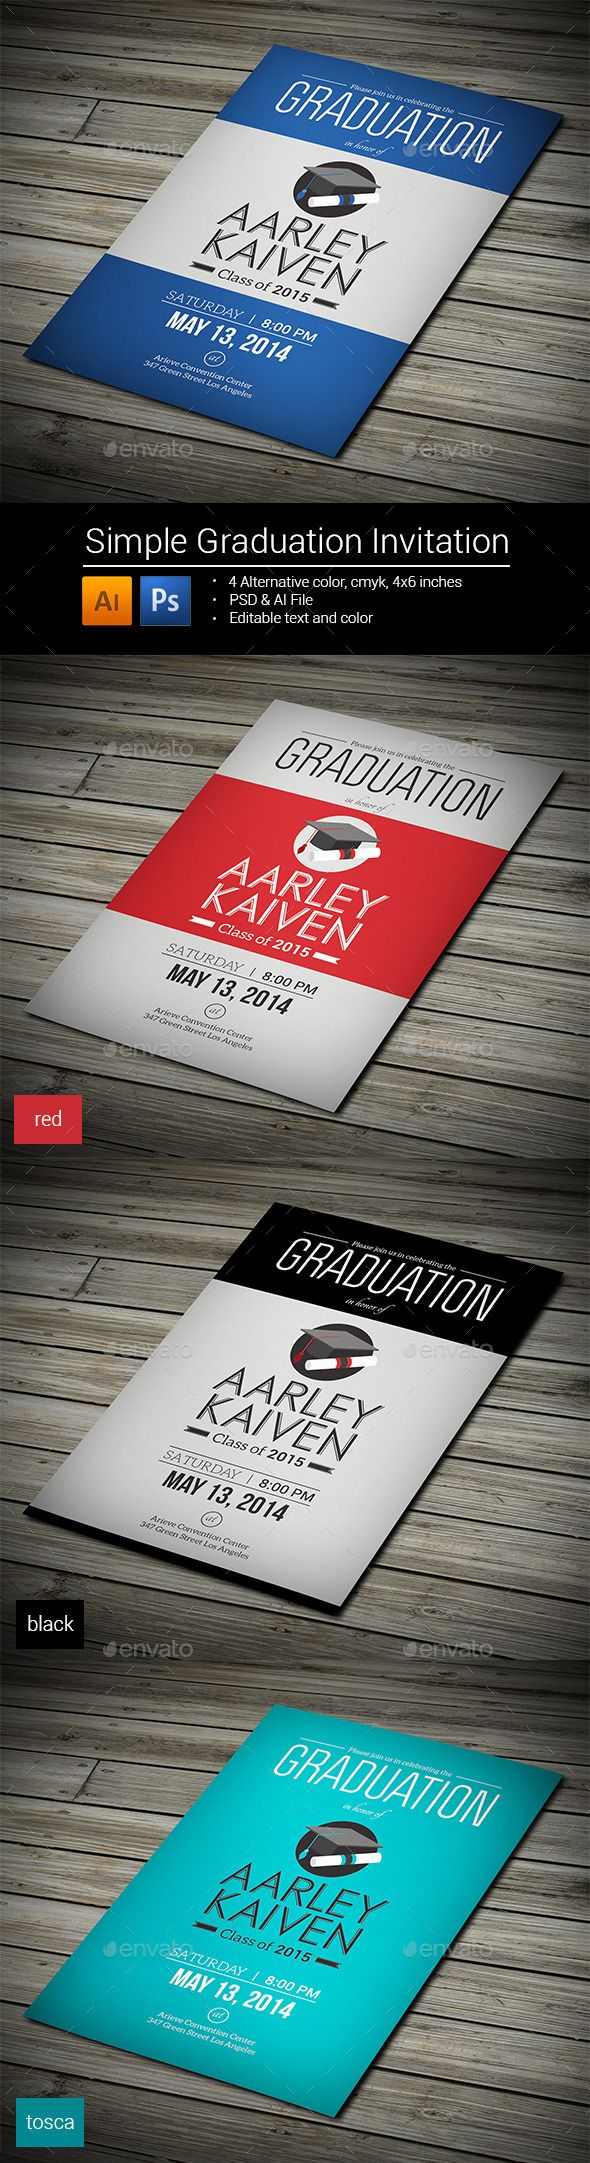 graduation party invitation templates for word%0A Simple Graduation Invitation  u     Photoshop PSD  simple  red  u     Available here      https